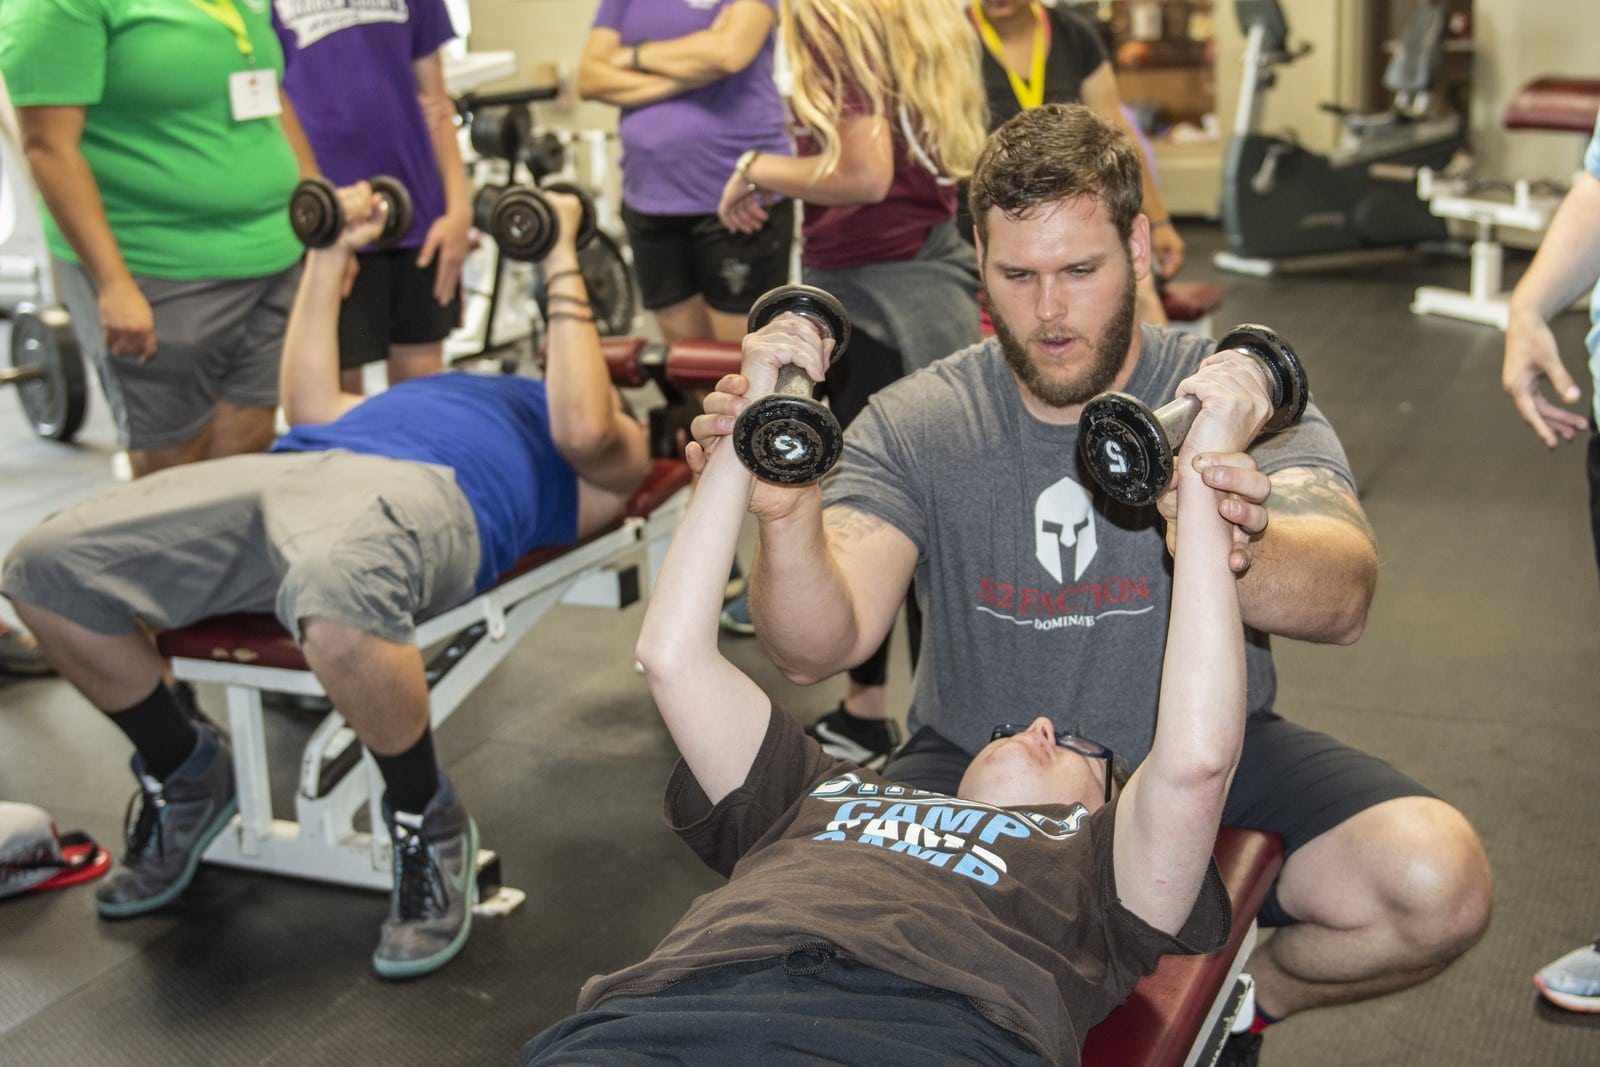 An athlete lies on a bench pressing weights to the sky with the help of a coach spotting them